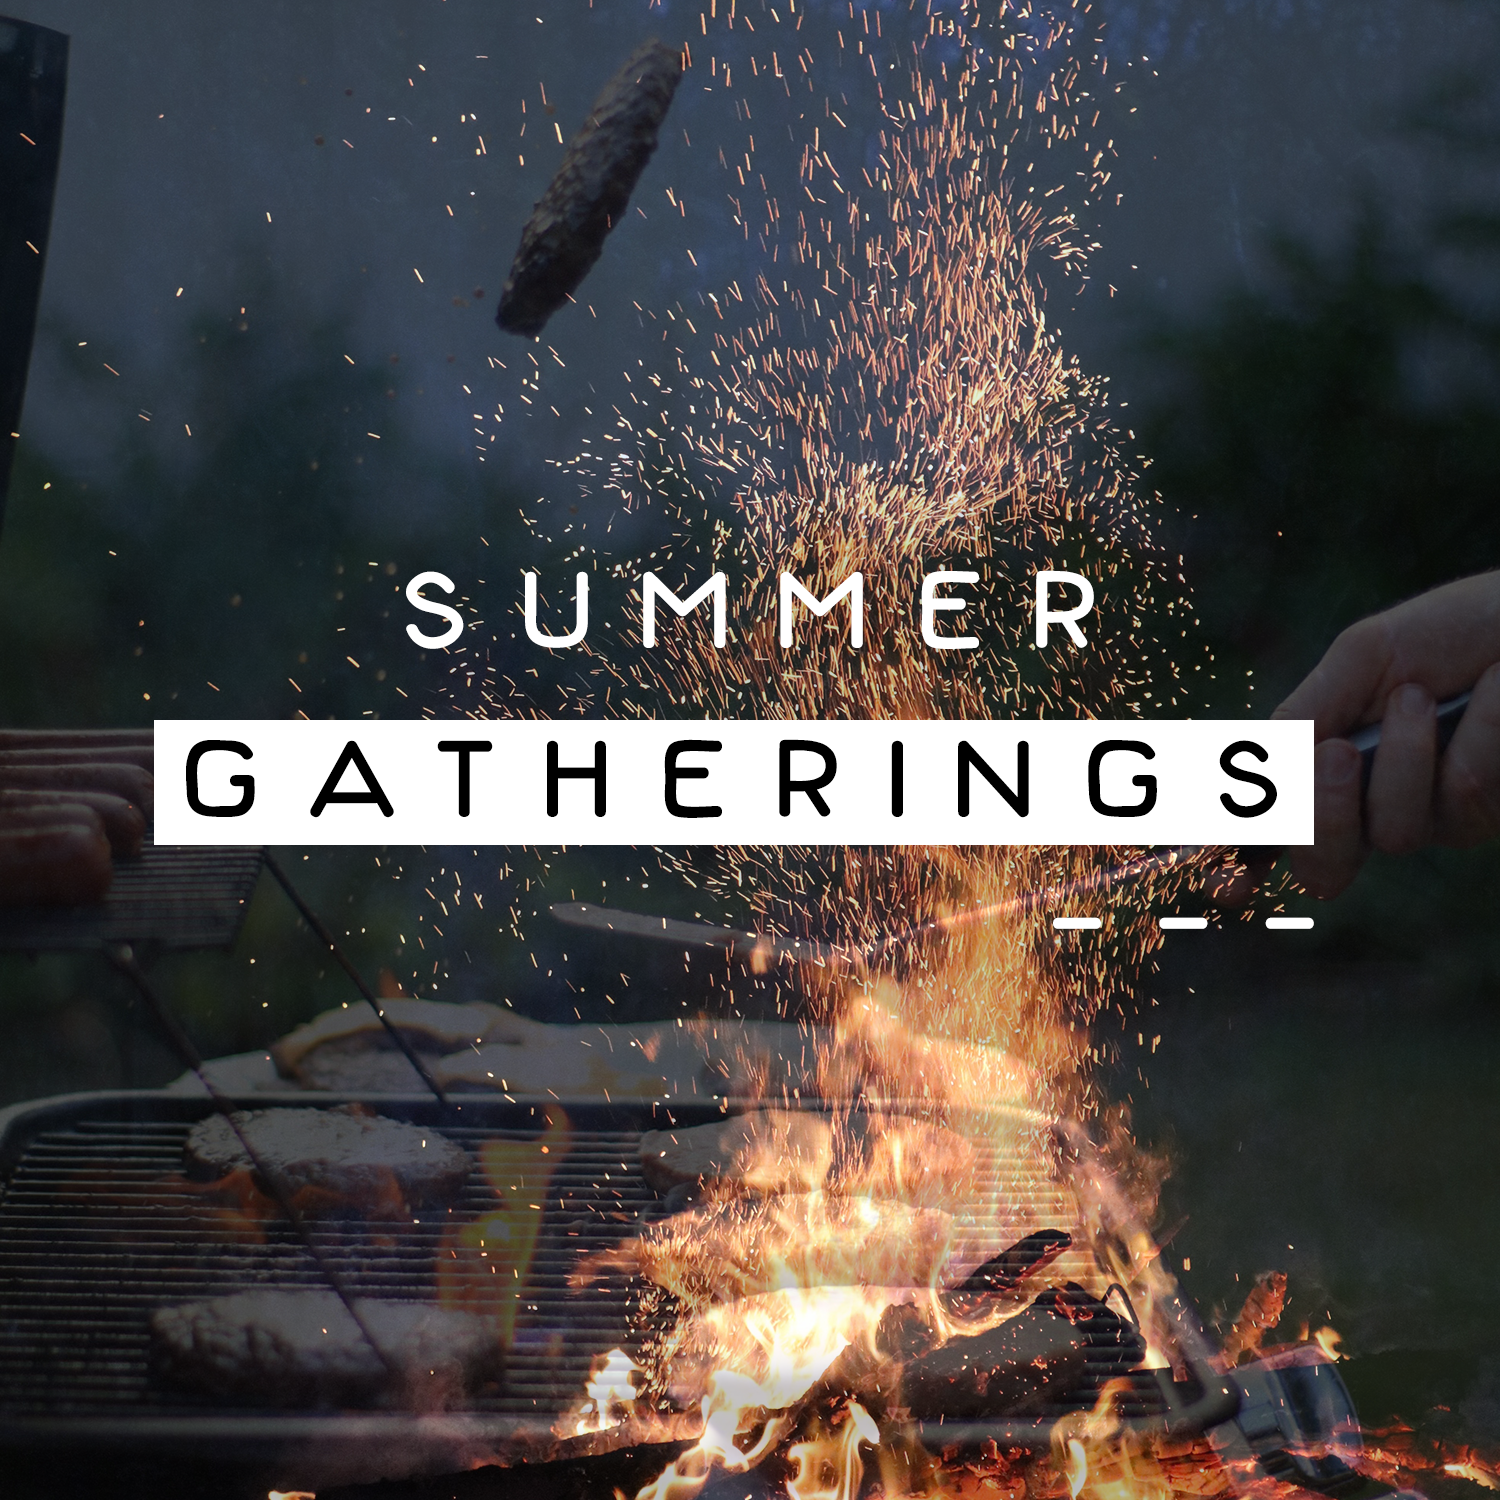 Beach Hang - July 7 @ 6pDurand BeachCookout, bonfire and worshipLed by Noah and Paige